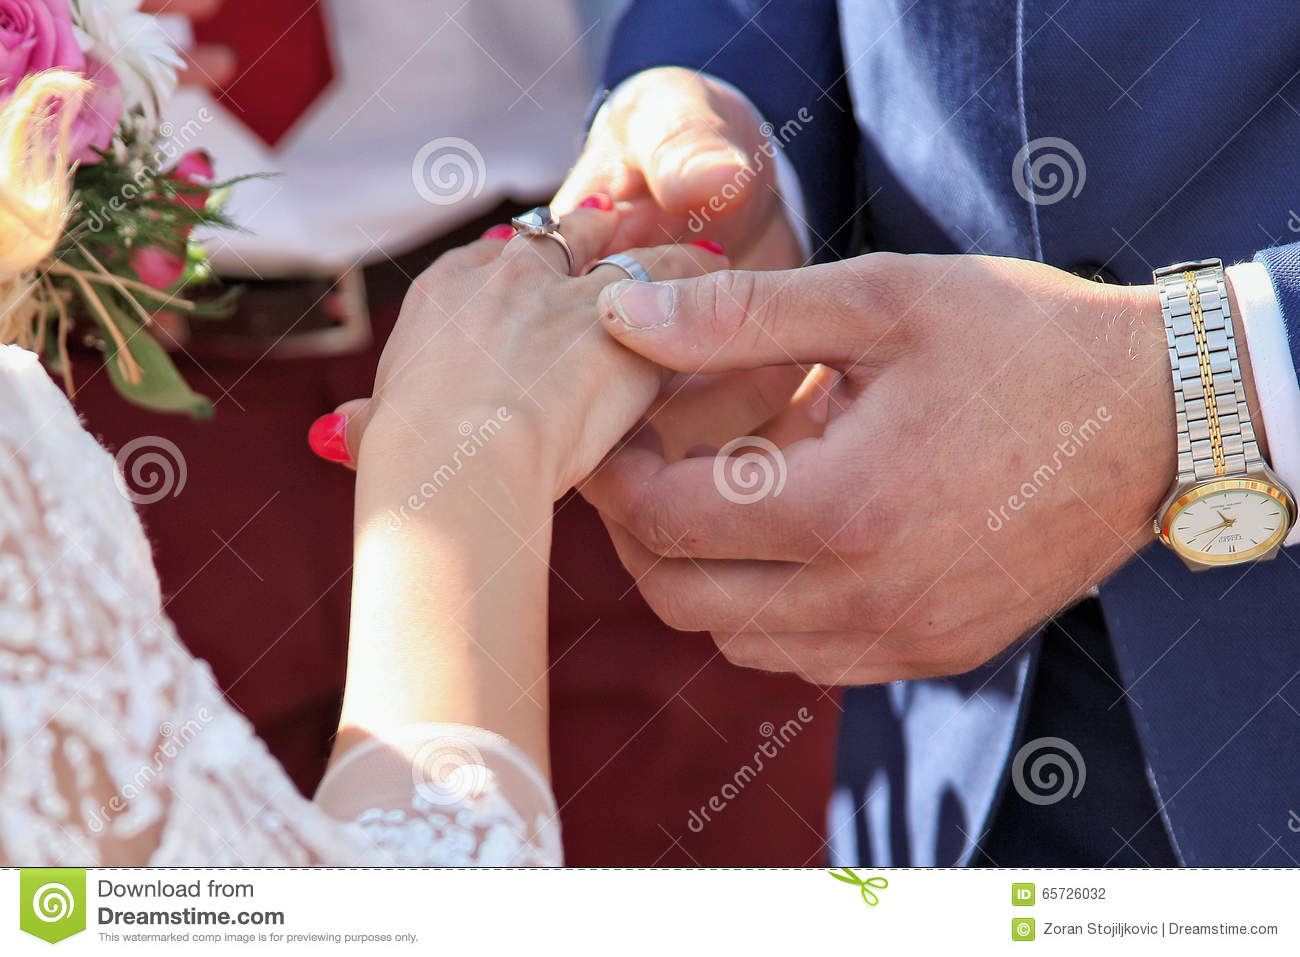 Solemn Moment Of The Wedding Actually When The Bride And Groom Give Gifts To Each Other Ring As A Symbol Of Loyalty